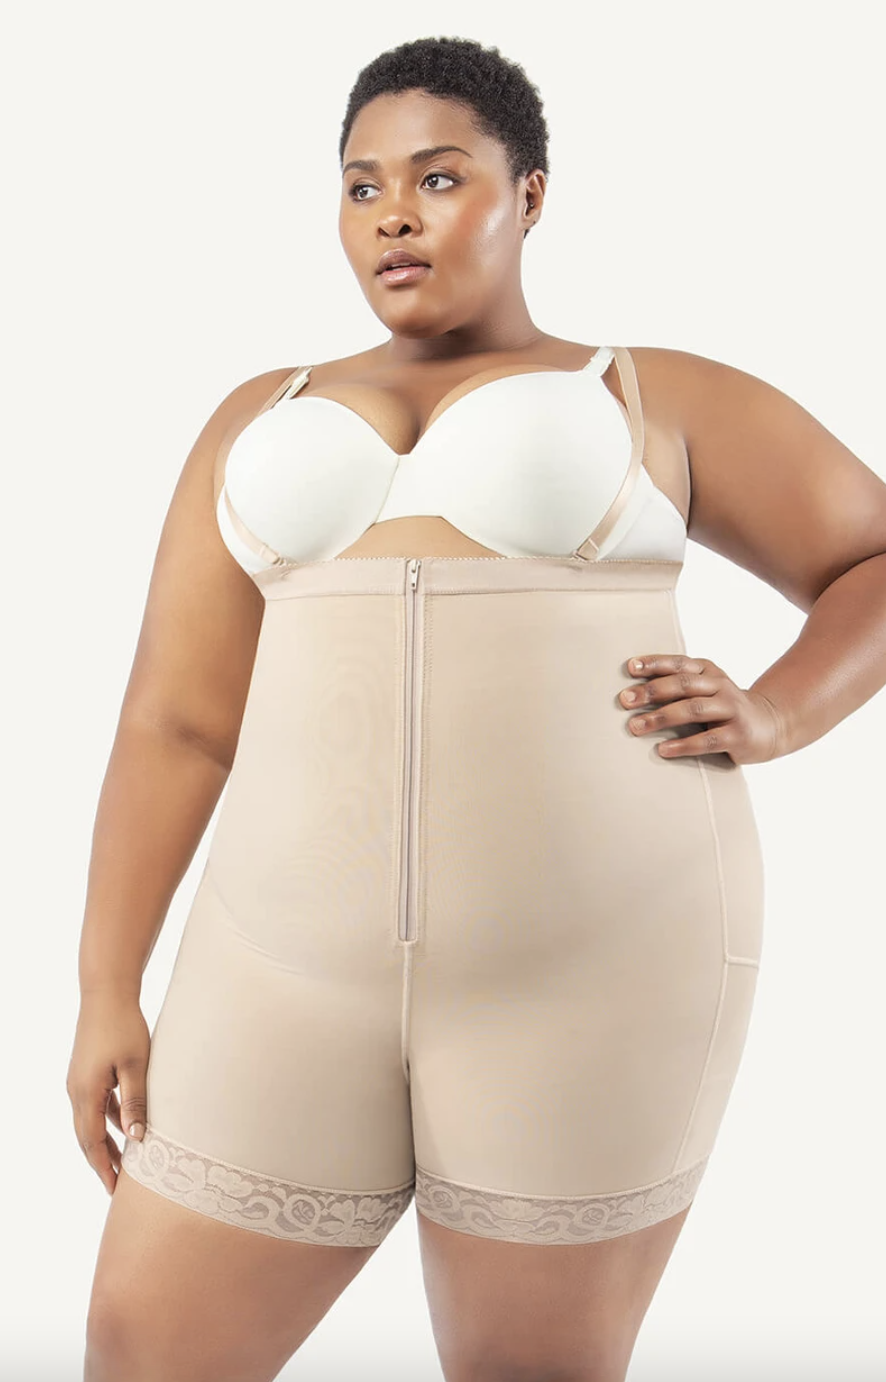 plus size model with short black hair wearing a white bra and beige body shaping shorts